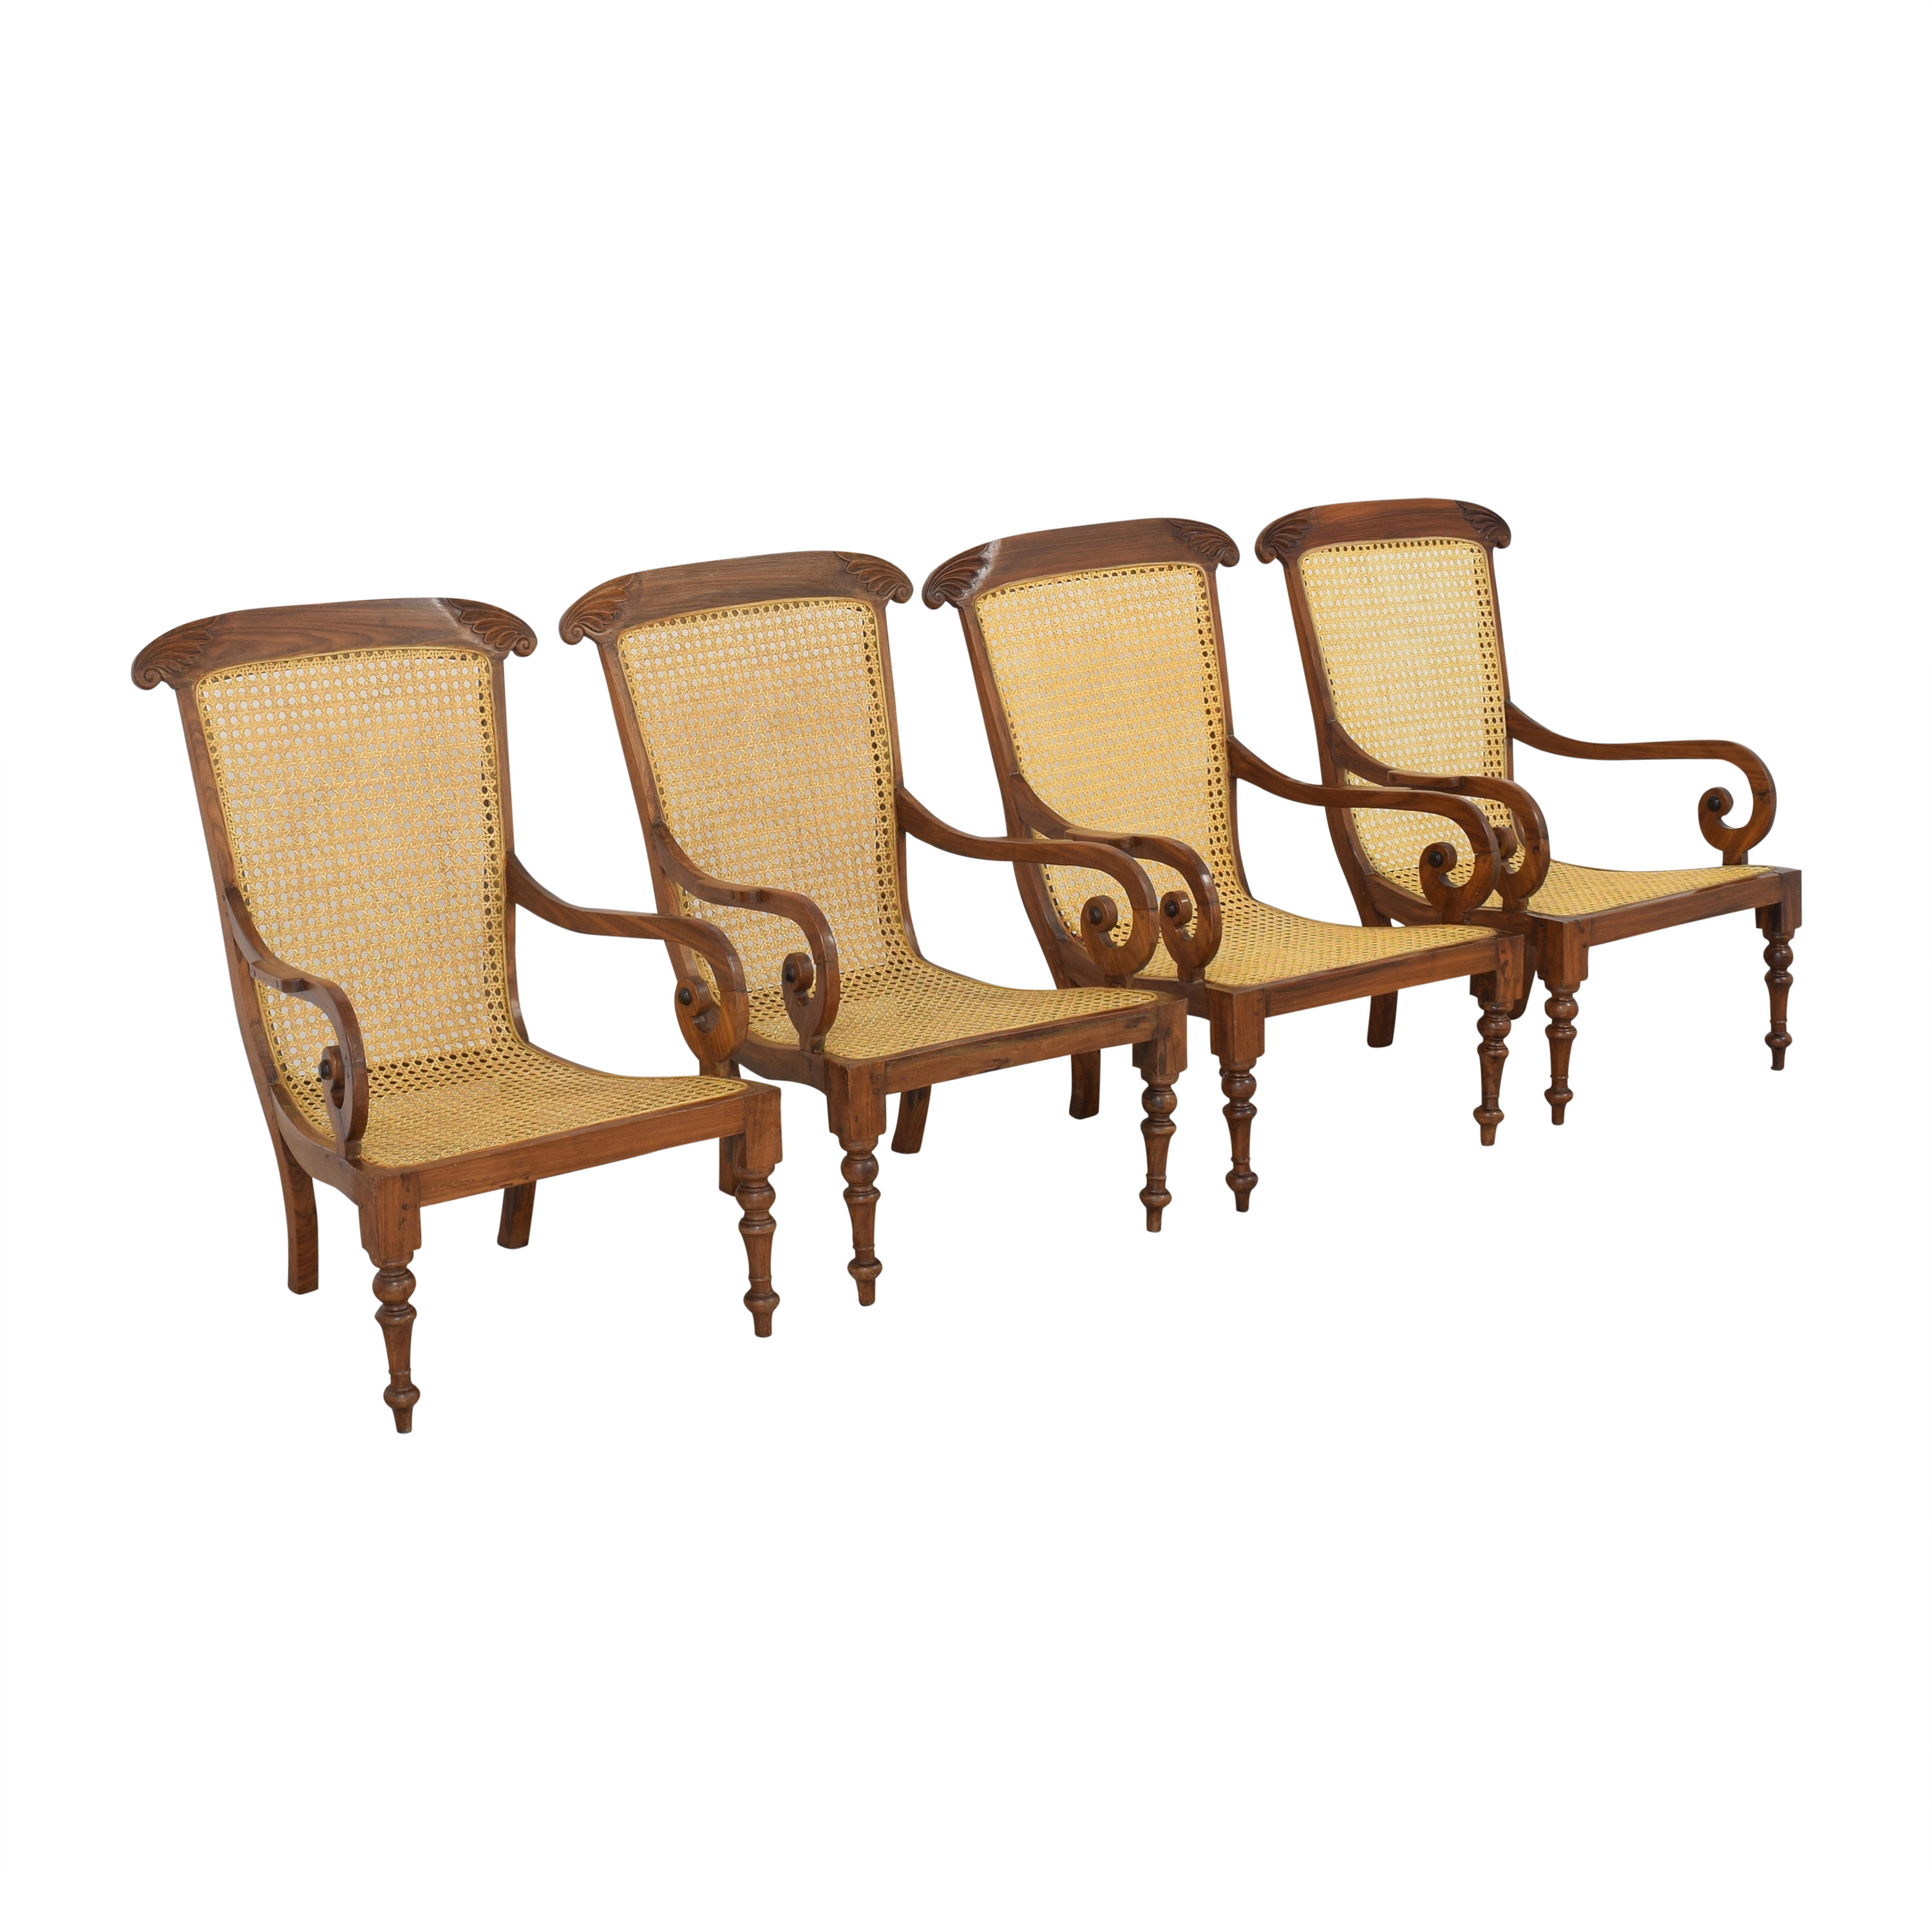 Vintage Carved Colonial-Style Chairs used